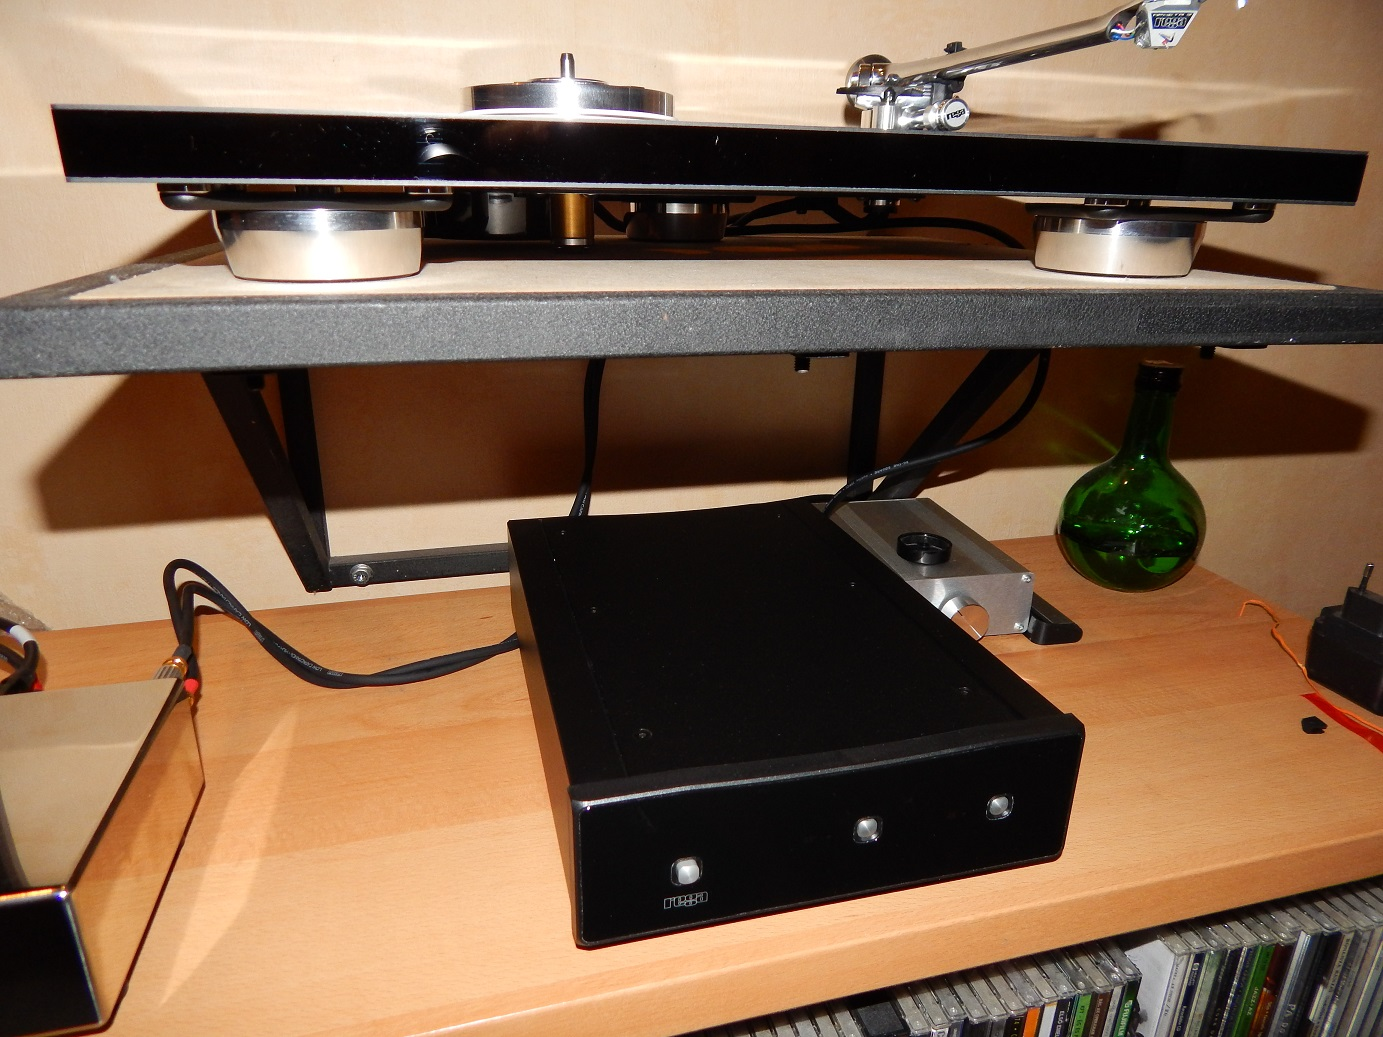 rega_rp-10_on_shelf.jpg